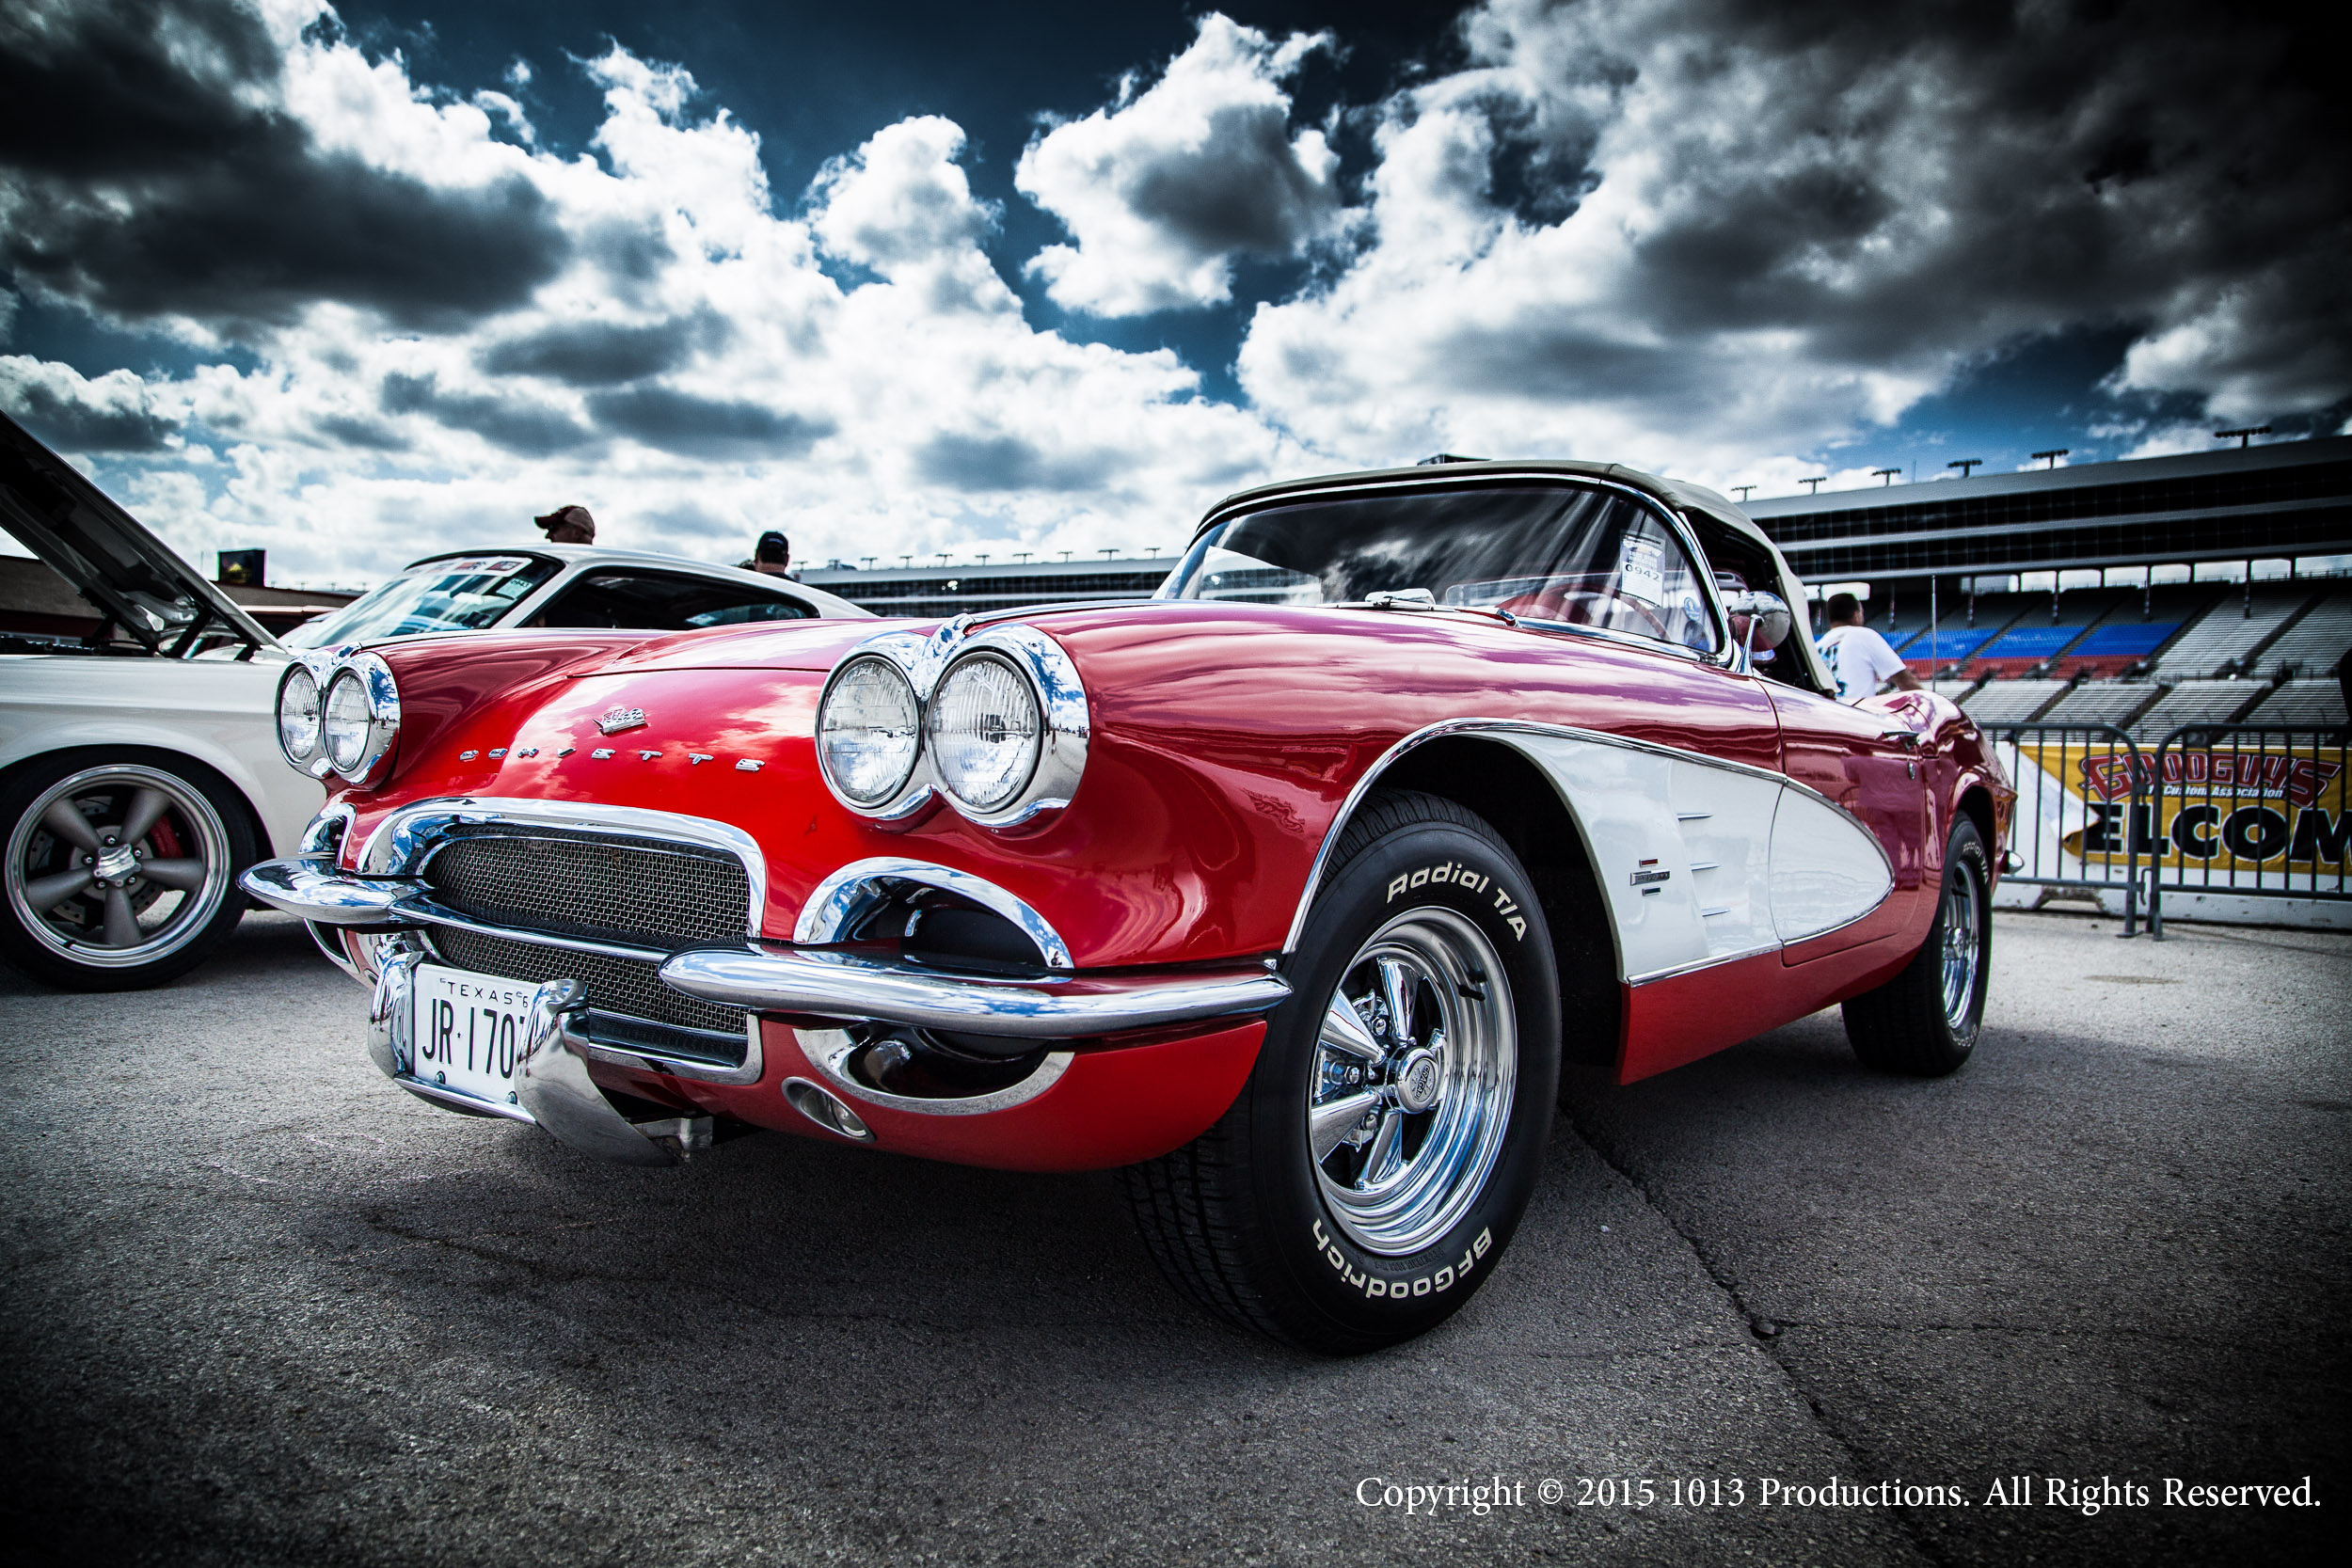 GoodGuys_2014-Corvette_c.jpg